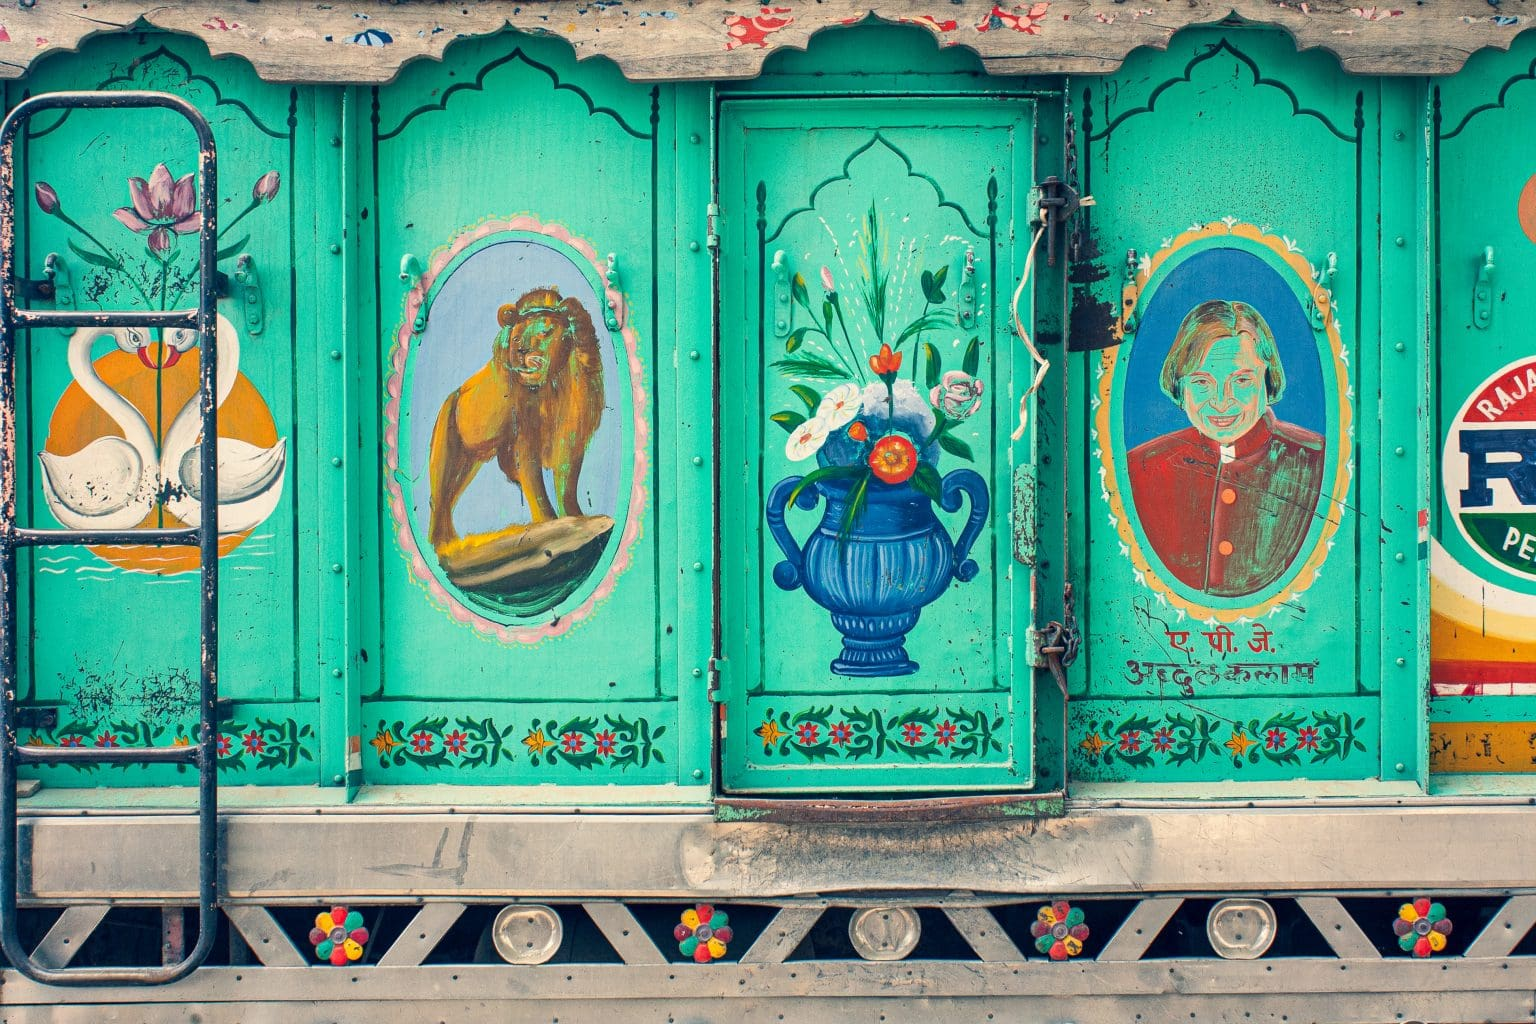 Image: The painted side panels of a truck